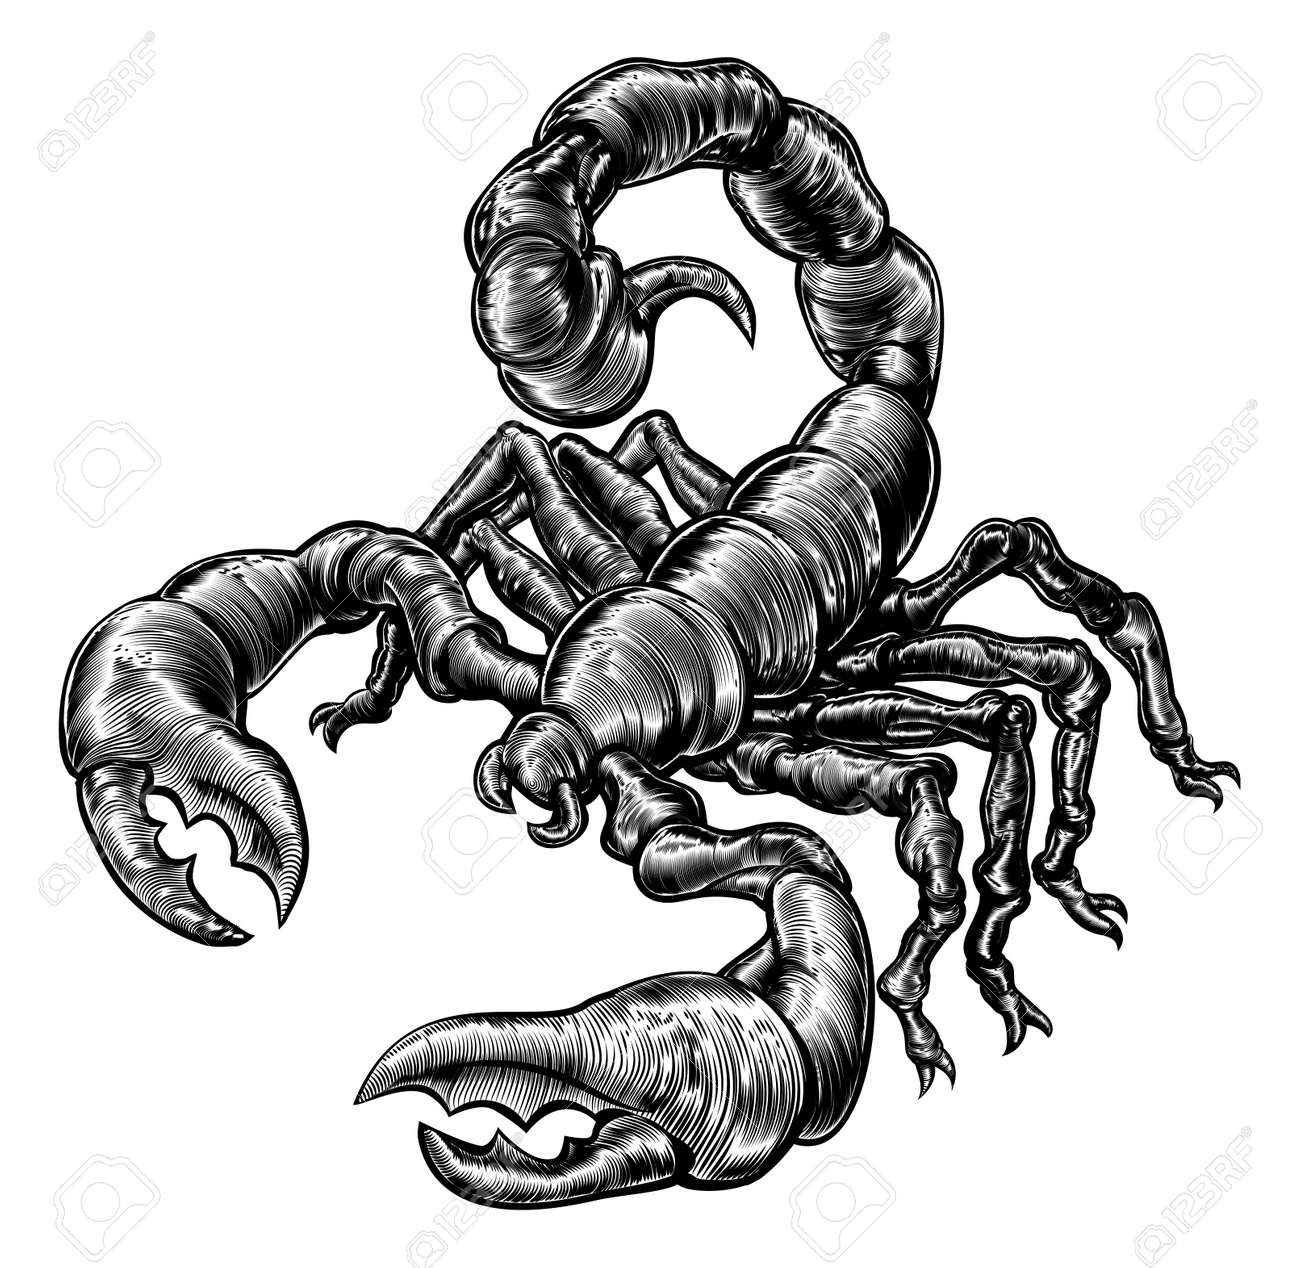 an original illustration of a scorpion in a vintage woodblock